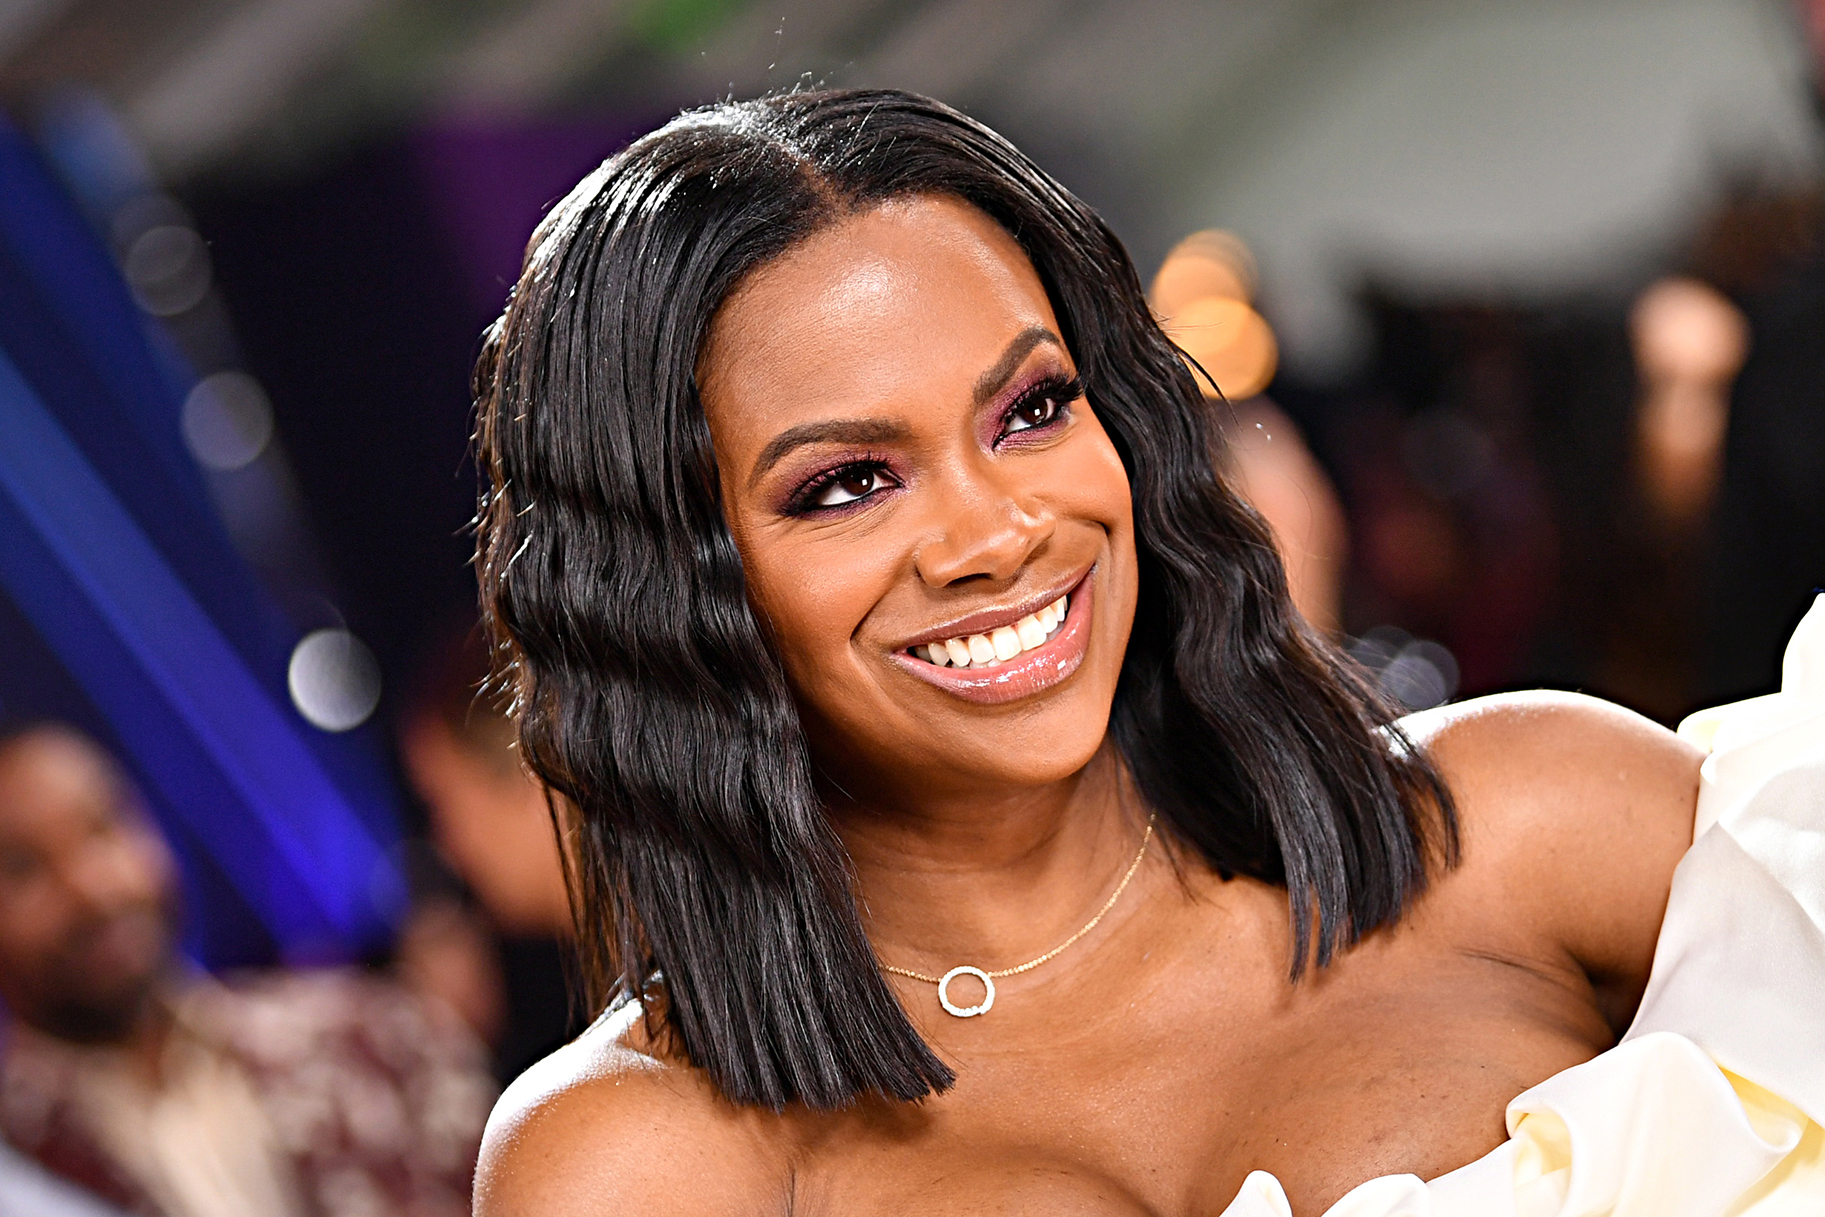 Kandi Burruss Films A Video With Don Juan - Check Out The Subject She Touched